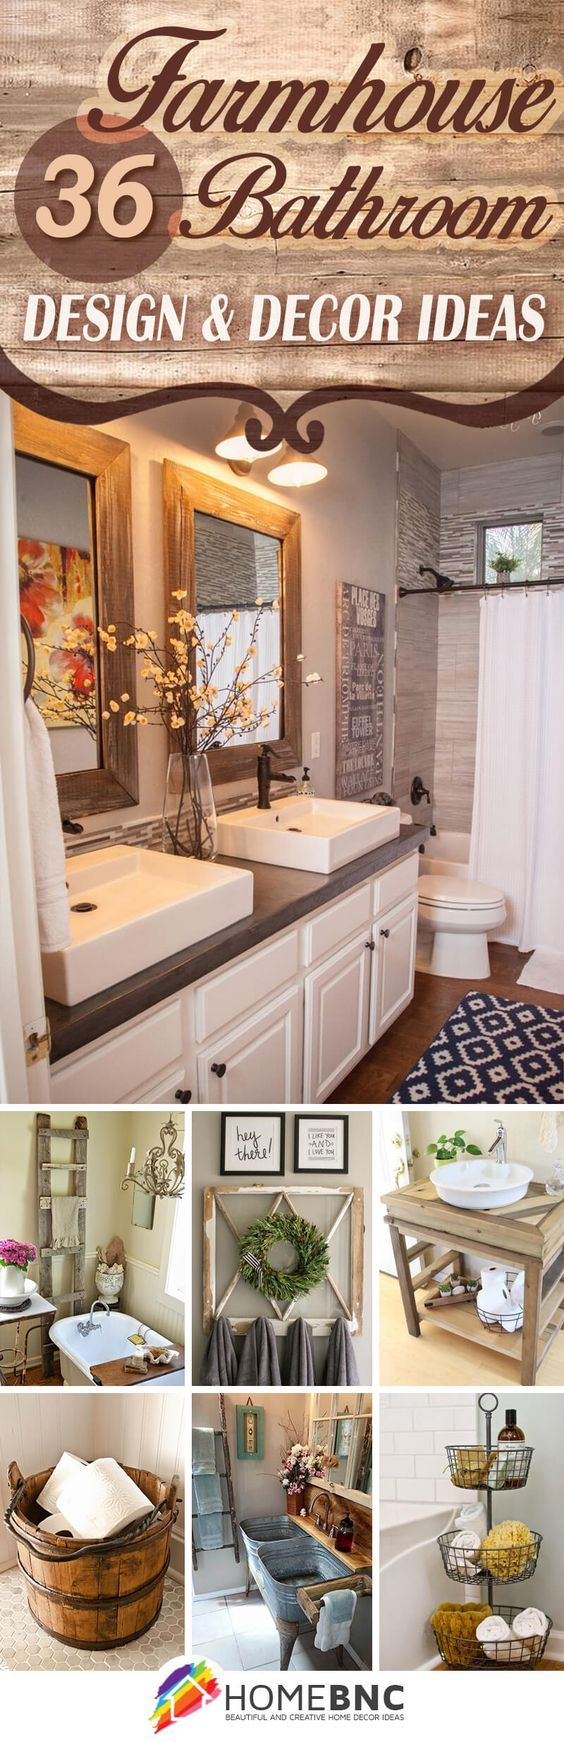 Rustic bathroom decor - 36 Beautiful Farmhouse Bathroom Design And Decor Ideas You Will Go Crazy For